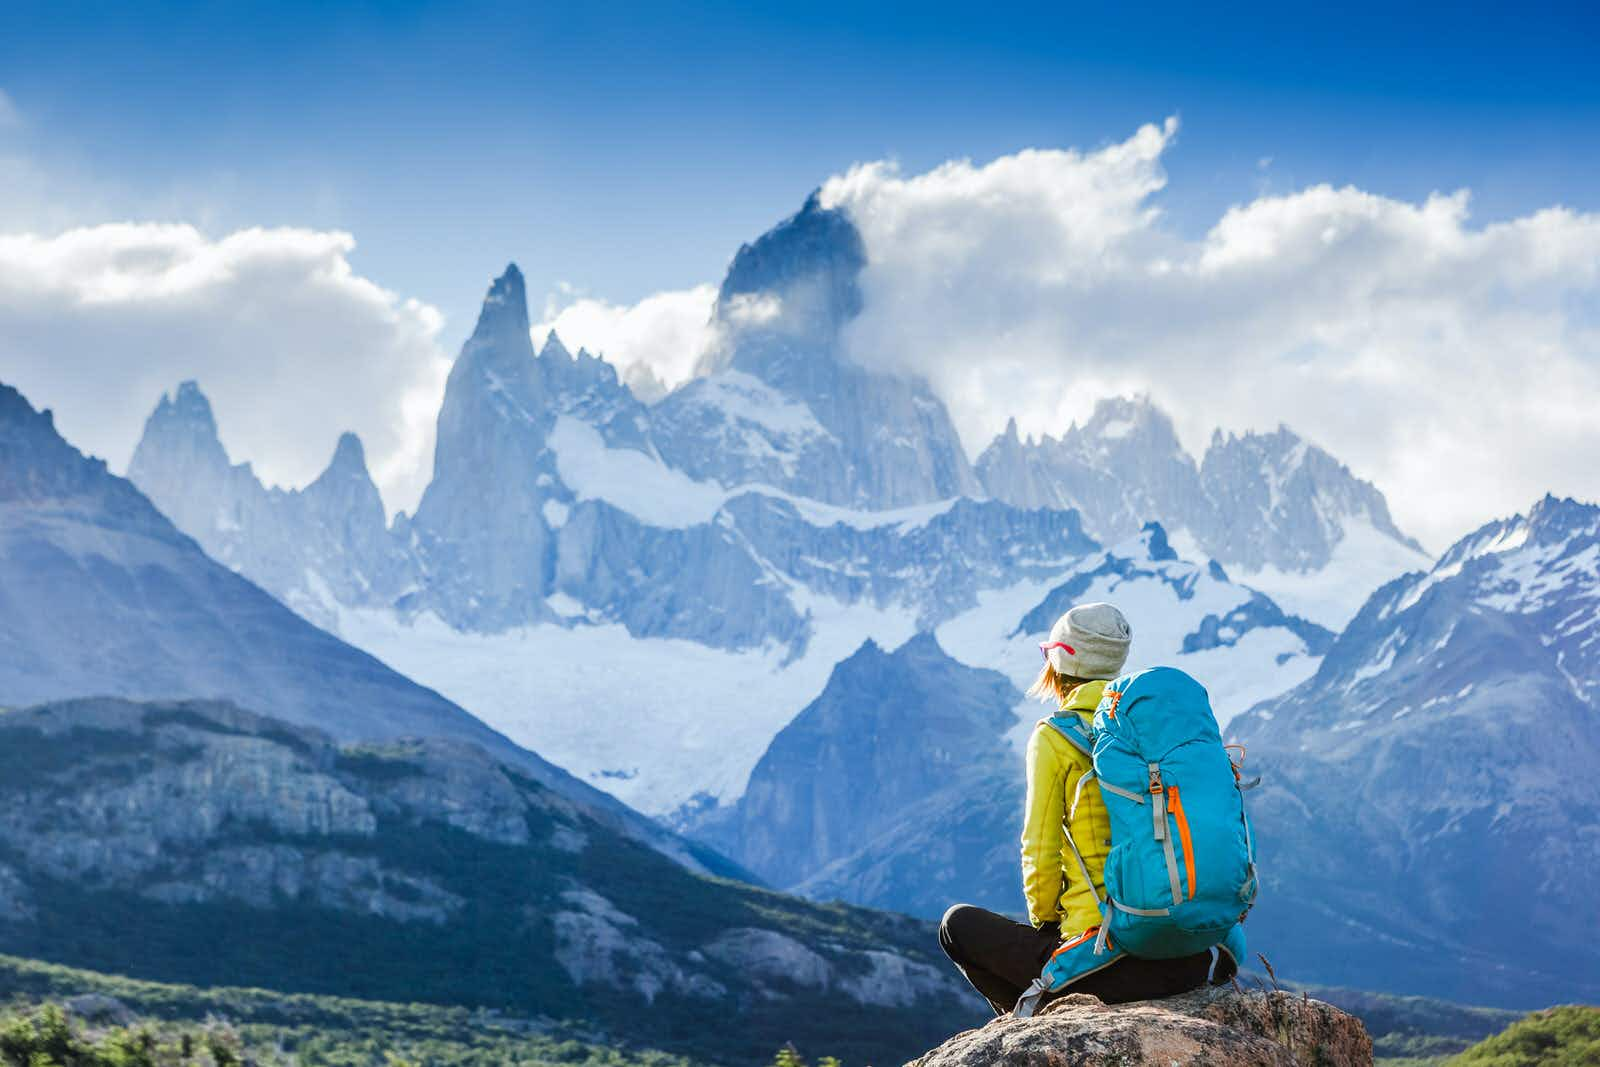 Argentina's landscape is a playground for those looking for unforgettable adventures © Olga Danylenko / Shutterstock